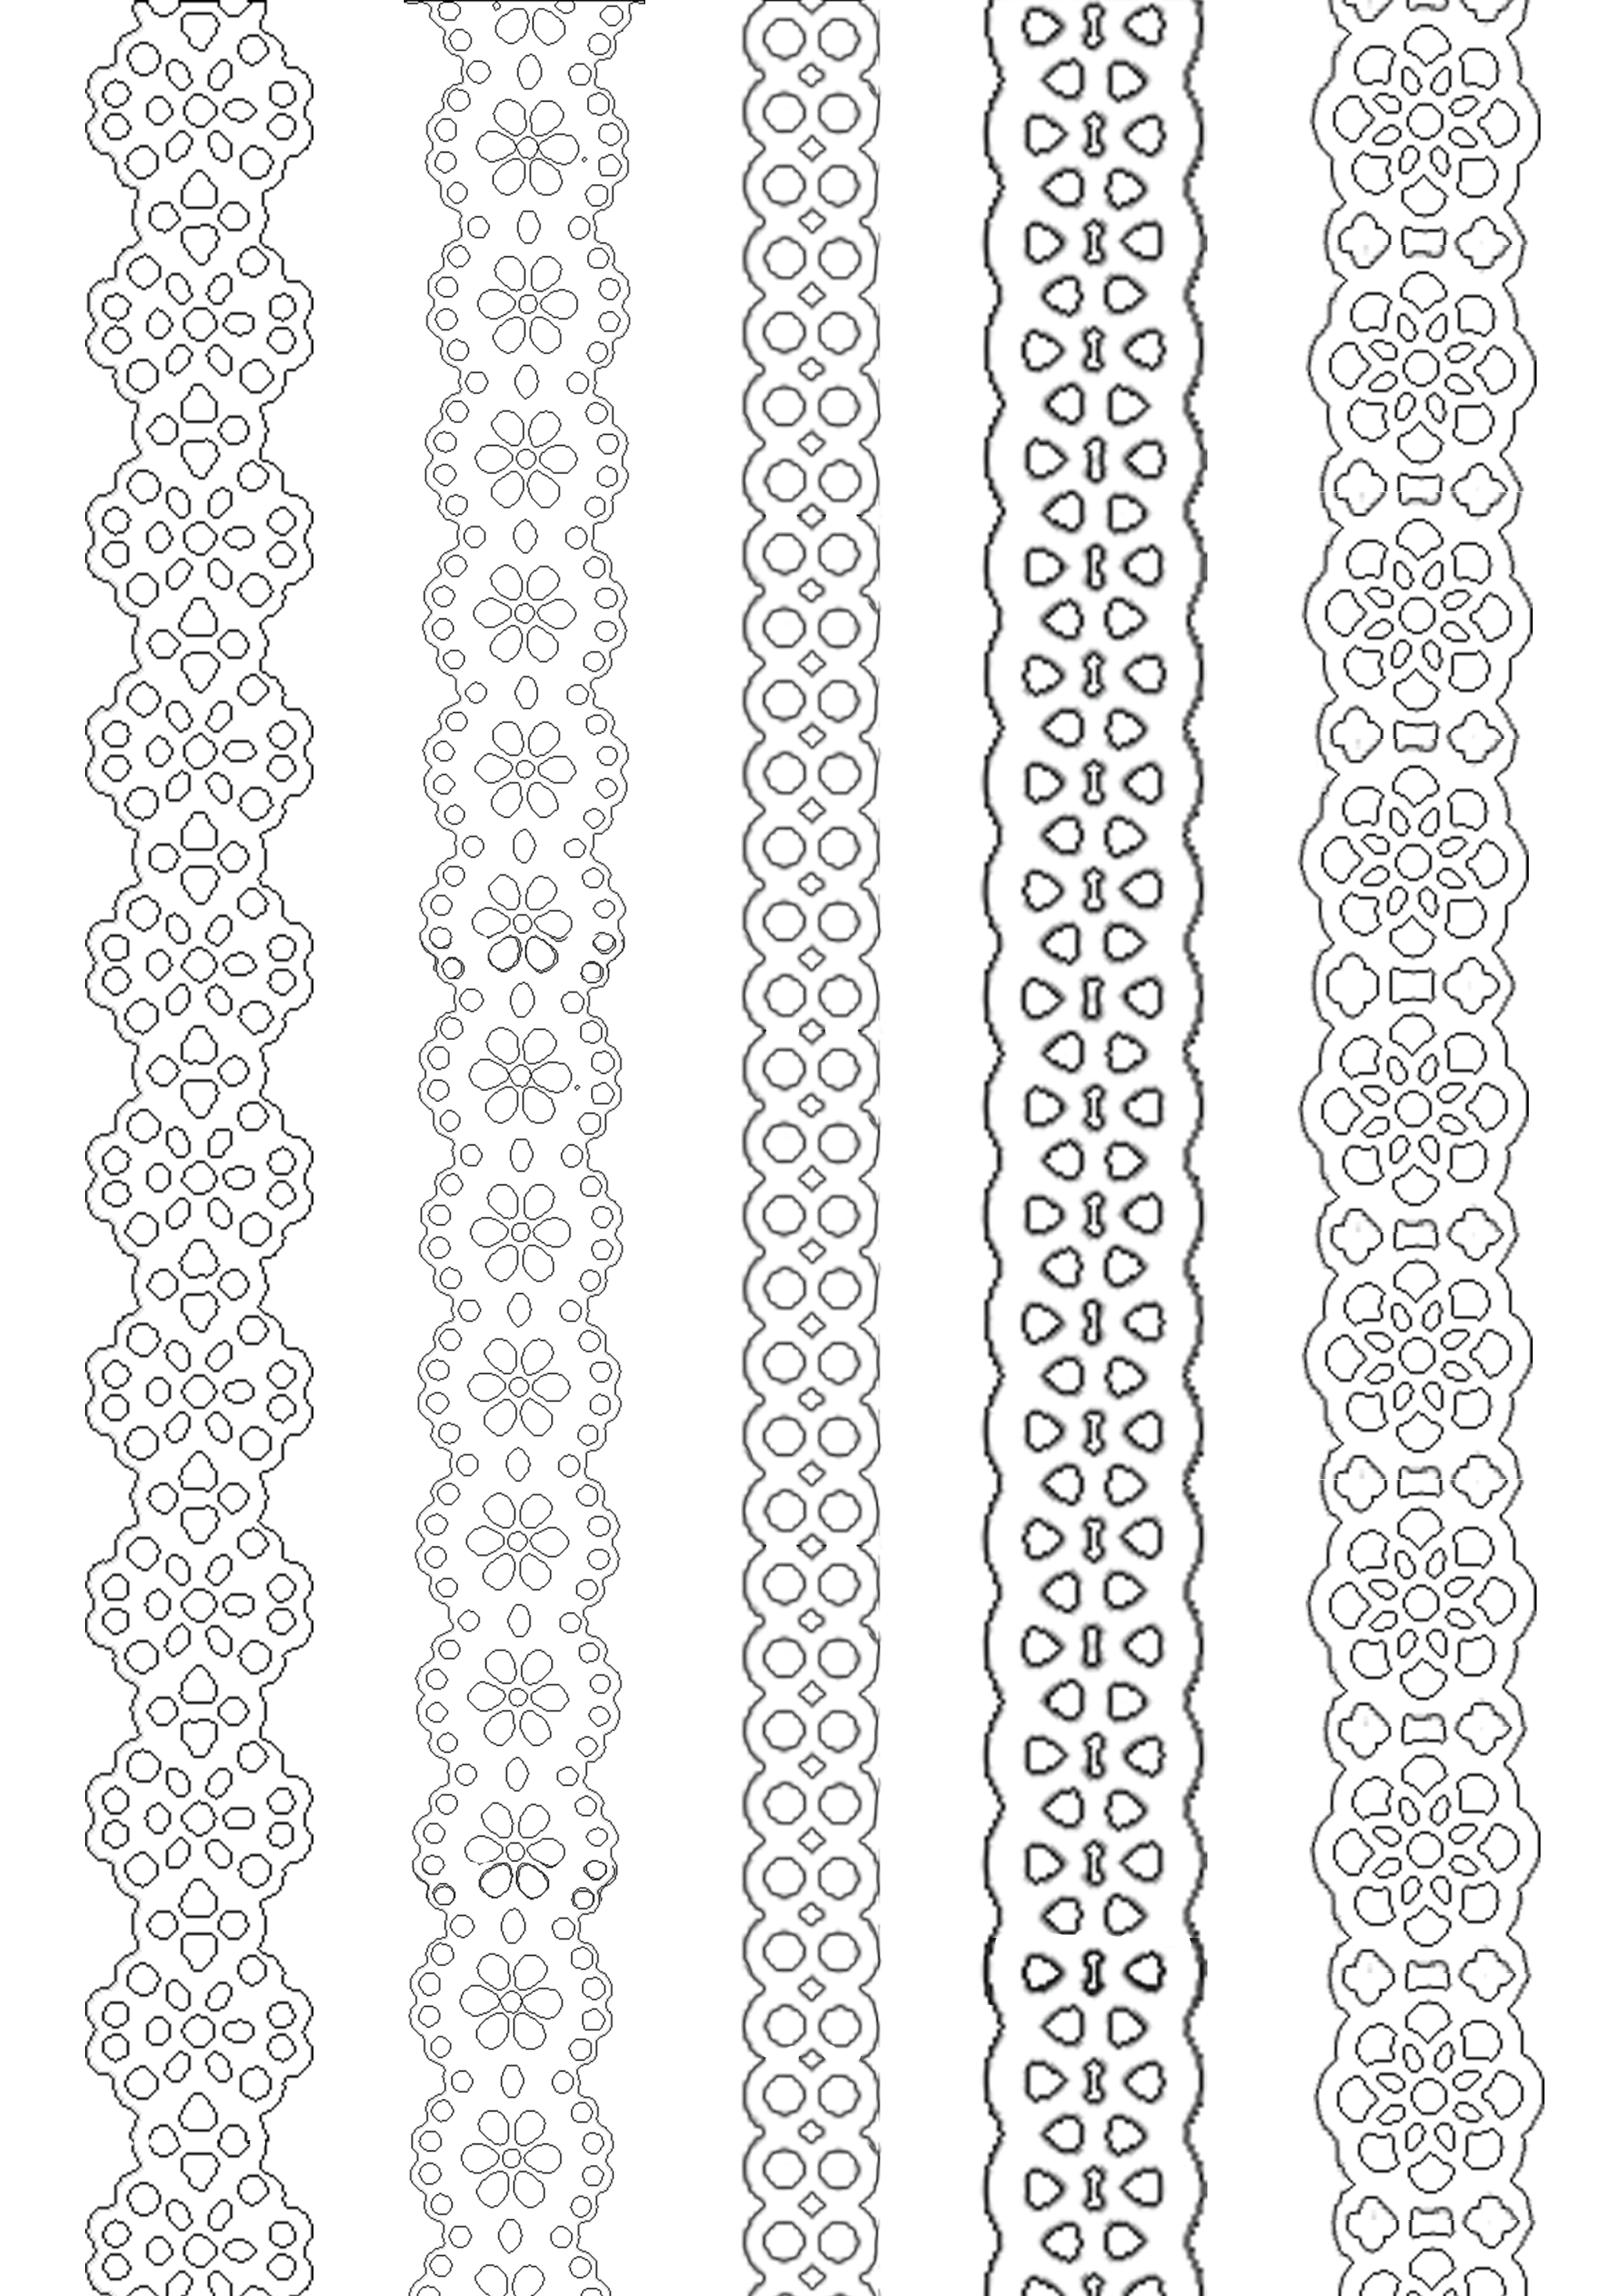 Paper Lace Ribbons To Print And Paint Everywhere. | Painting - Free Printable Lace Stencil